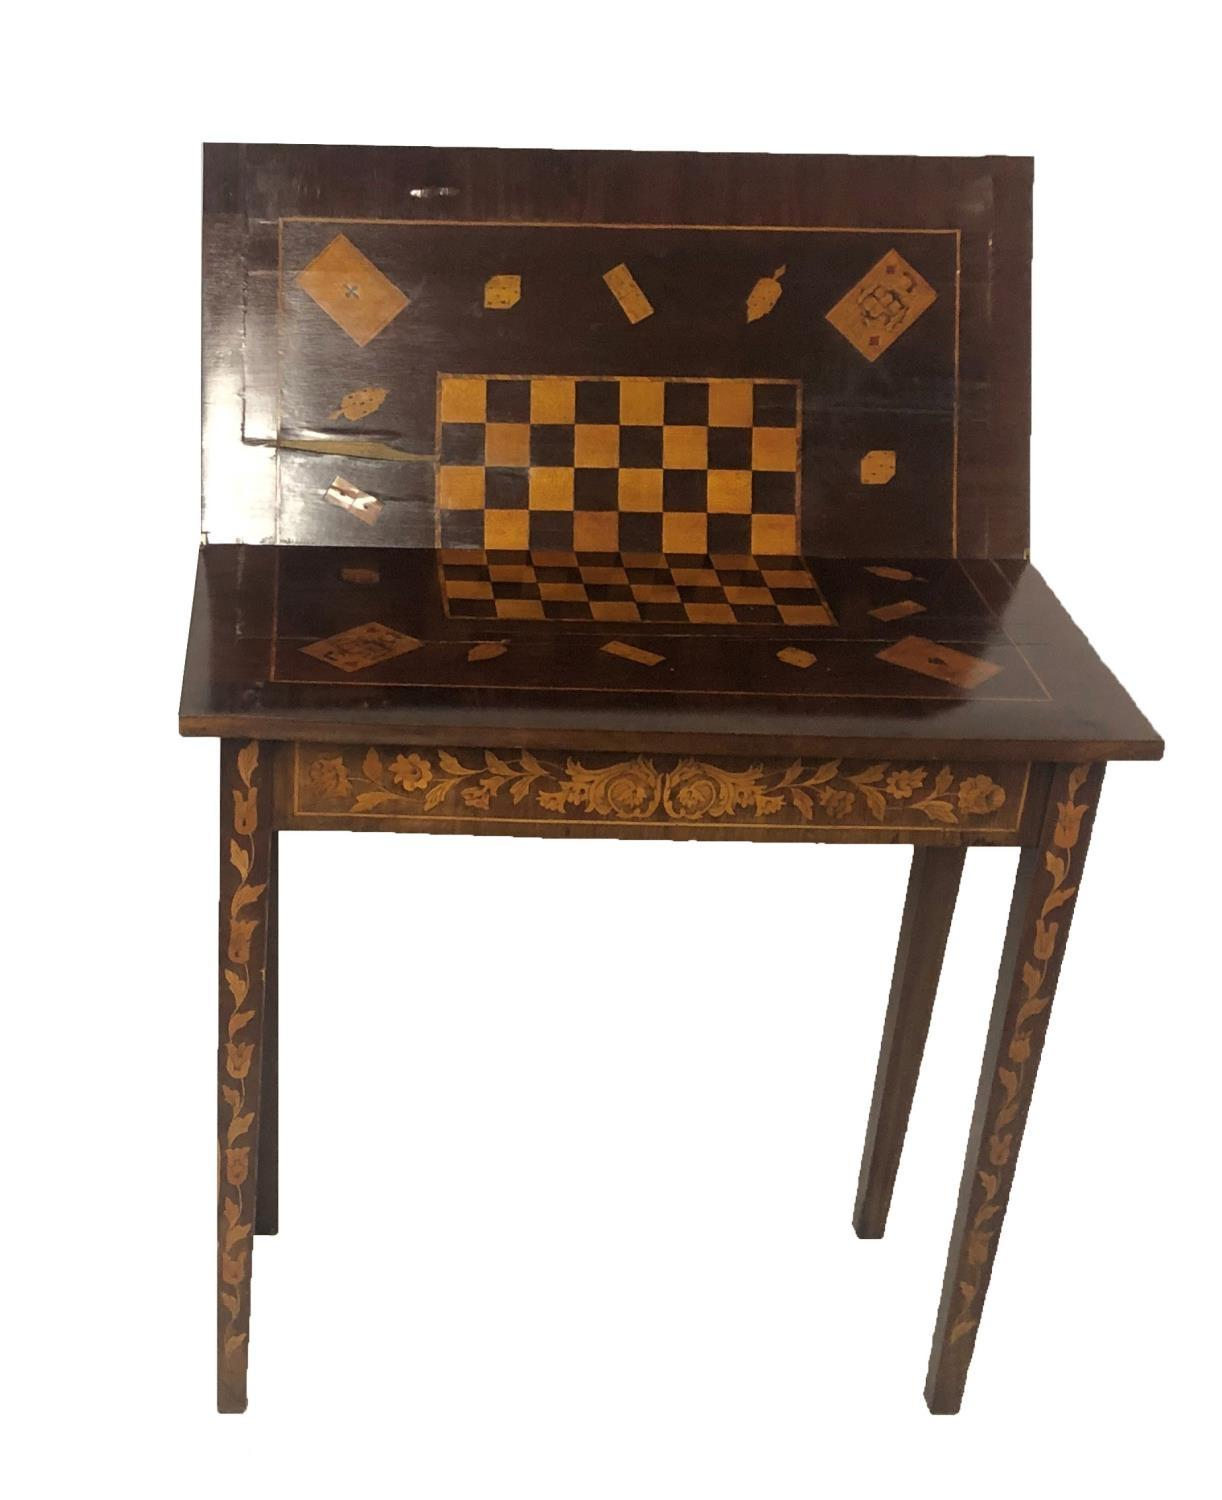 Lot 709 - A 19TH CENTURY DUTCH FLORAL MARQUETRY INLAID FOOD OVER CARD TABLE With checker-board surface, on